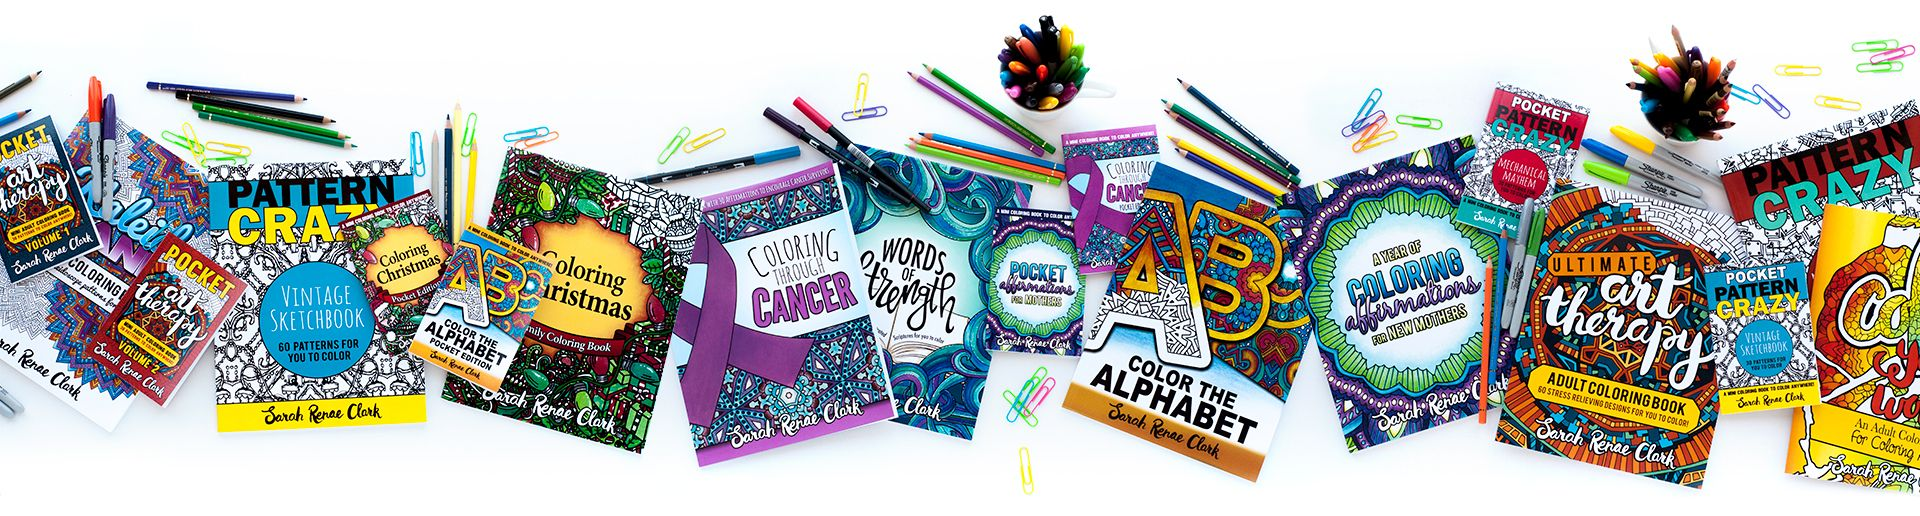 Check out the range of Adult Coloring Books by Sarah Renae Clark